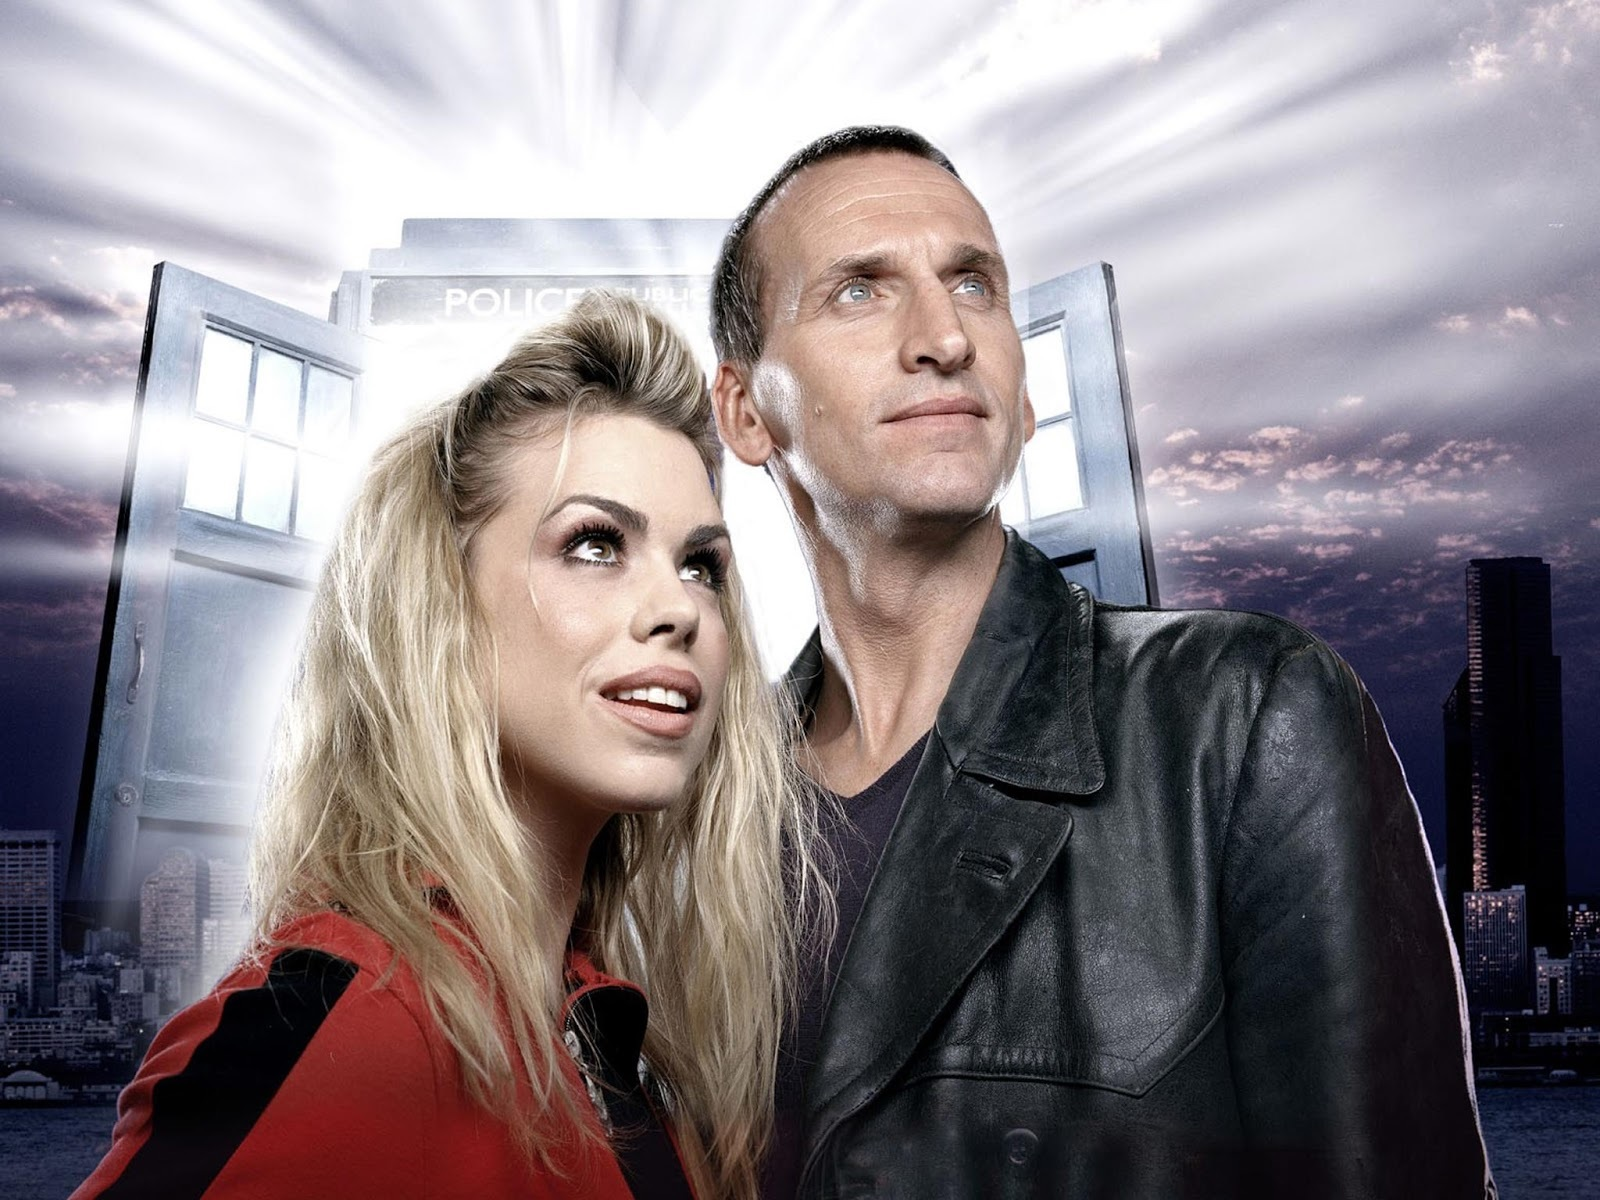 Time Lord Victorious: The Ninth Doctor Returns to Doctor Who Magazine This Year!